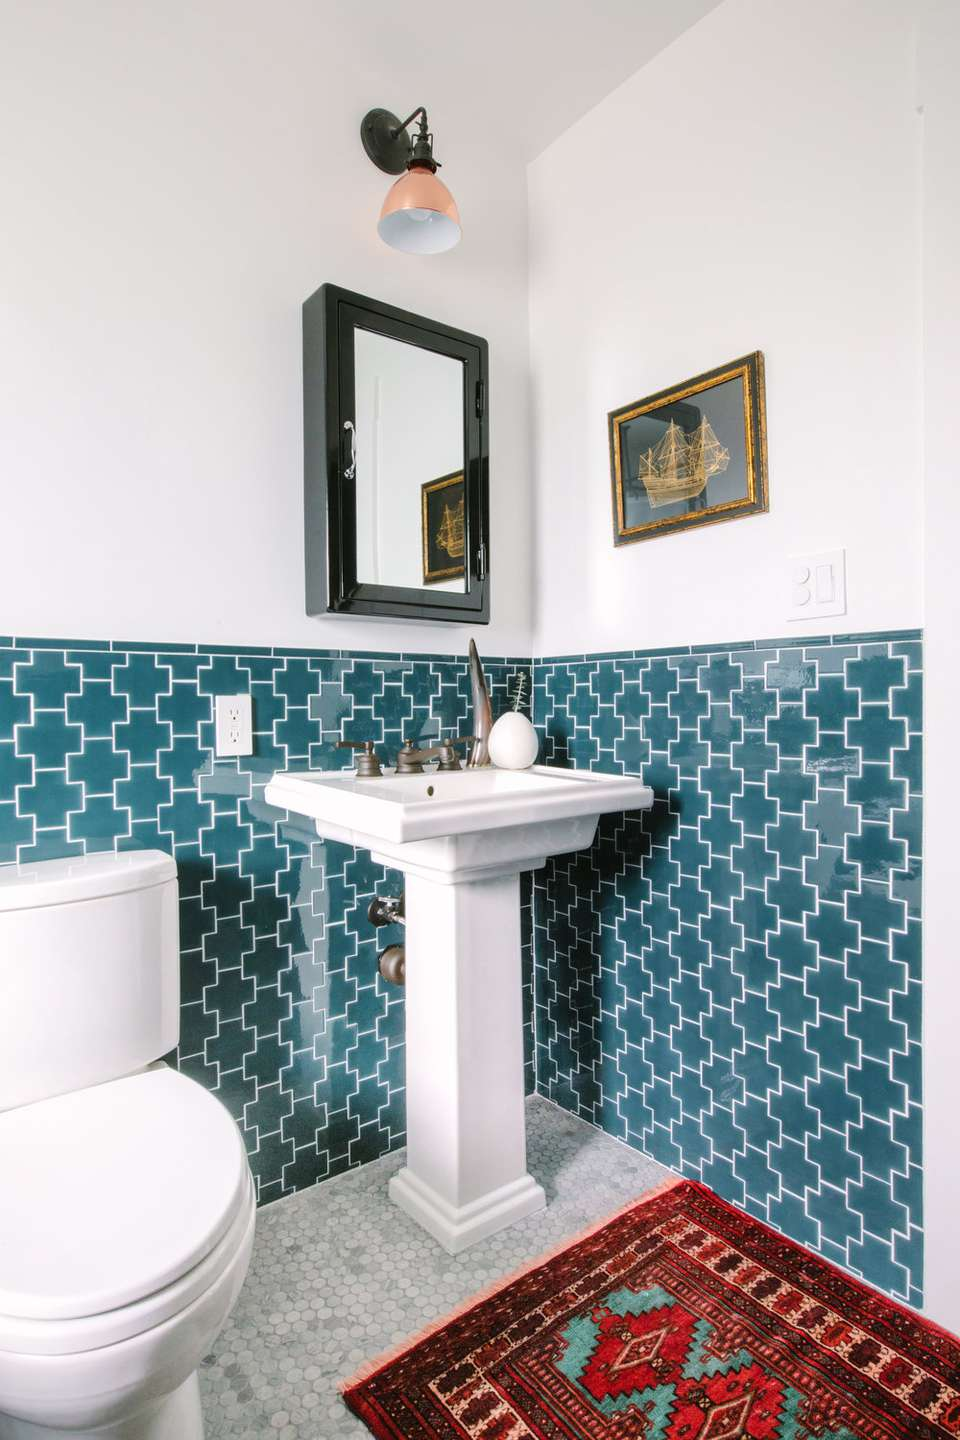 15 Beautiful Bathrooms With Stylish Pedestal Sinks